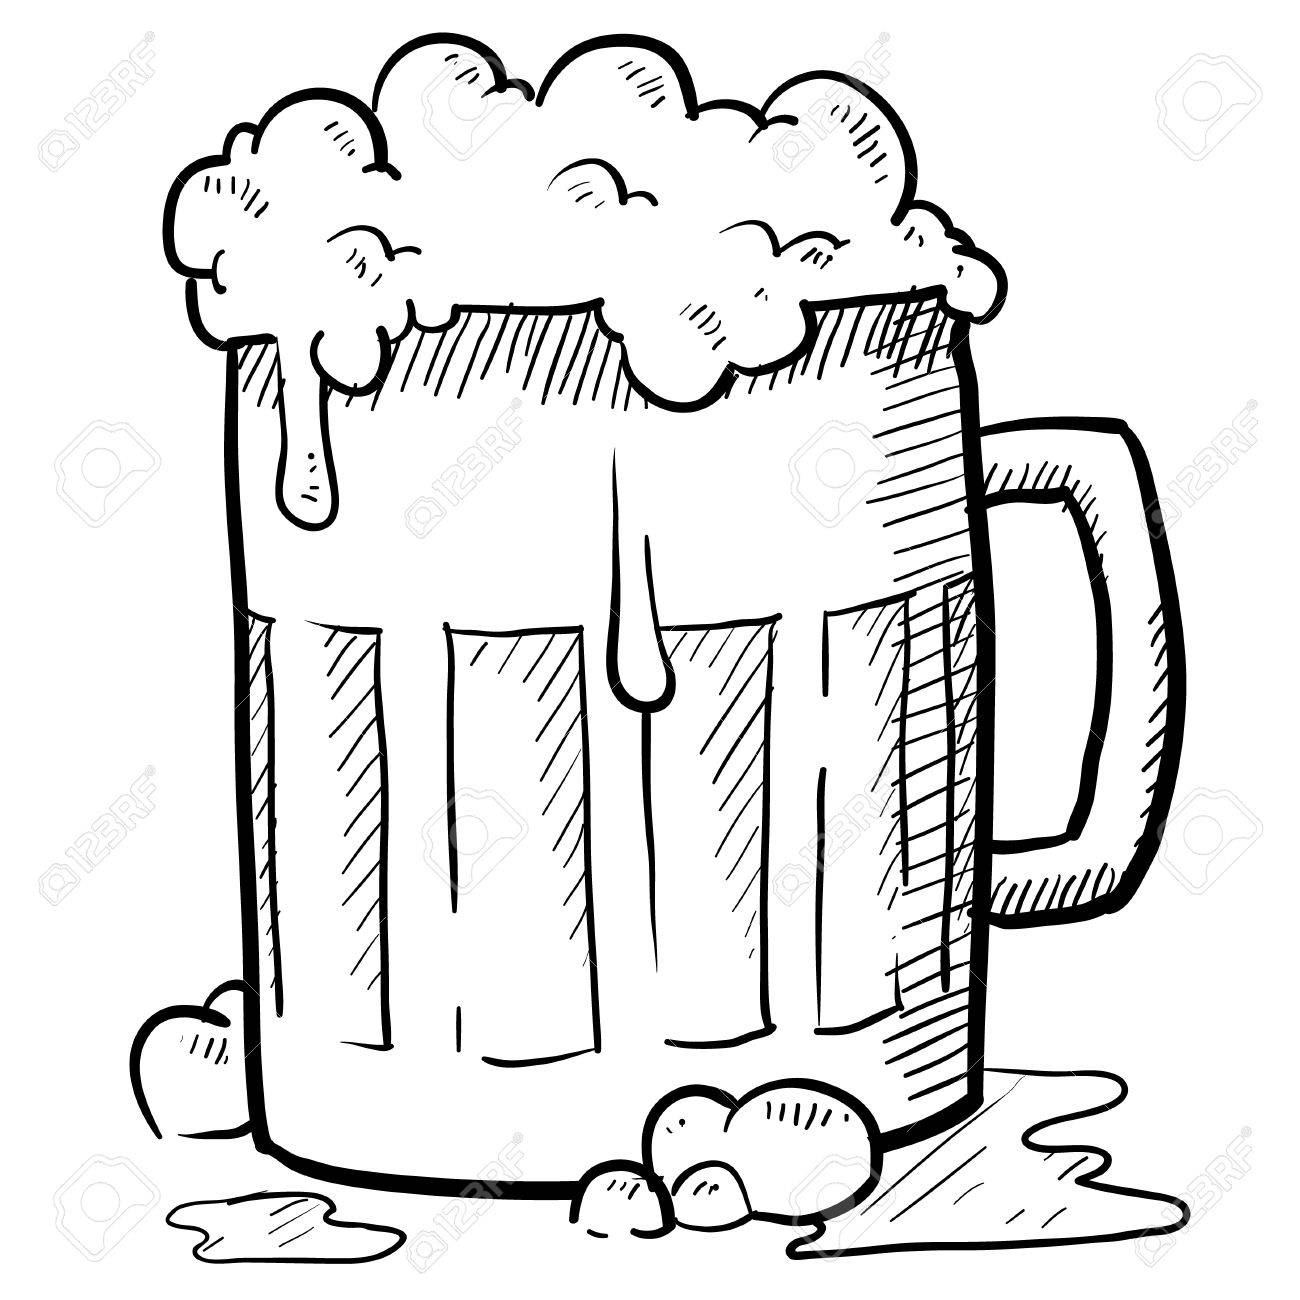 Doodle Style Frothy Beer Mug Vector Illustration Stock Photo Picture And Royalty Free Image Image 11575139